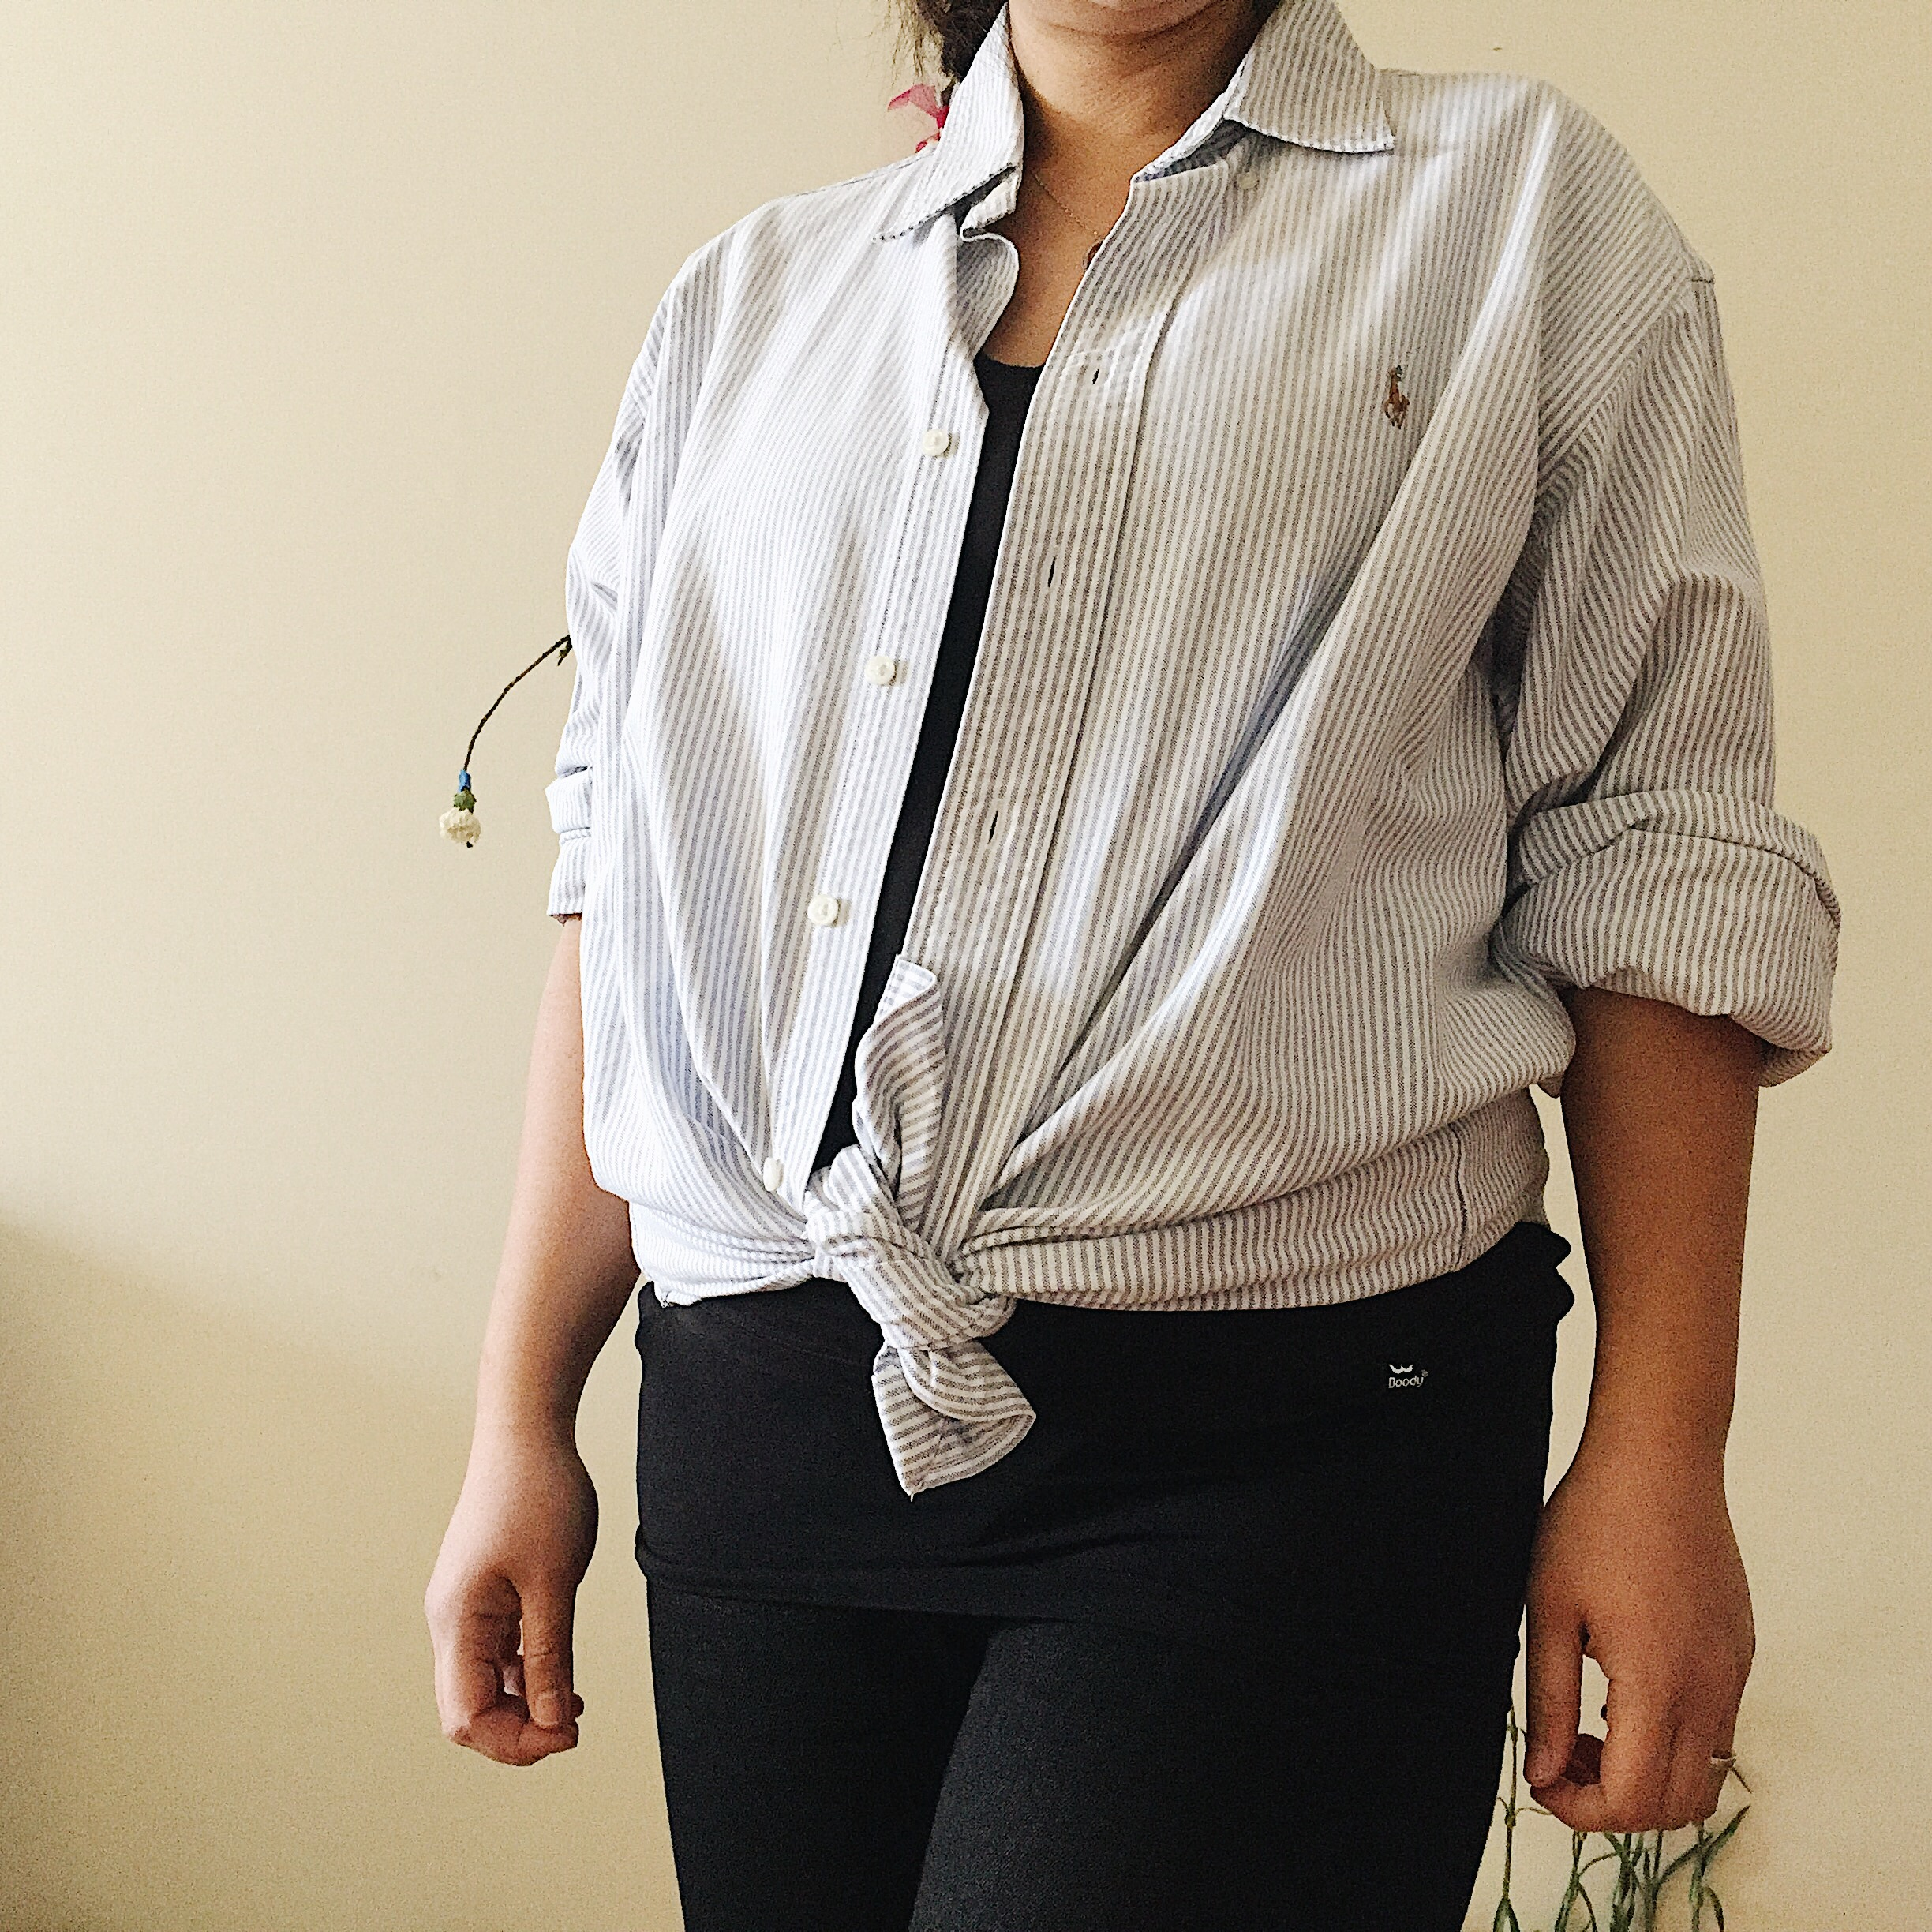 Sustainable Maternity Wear - Going with a classic oversized shirt from my father's closet